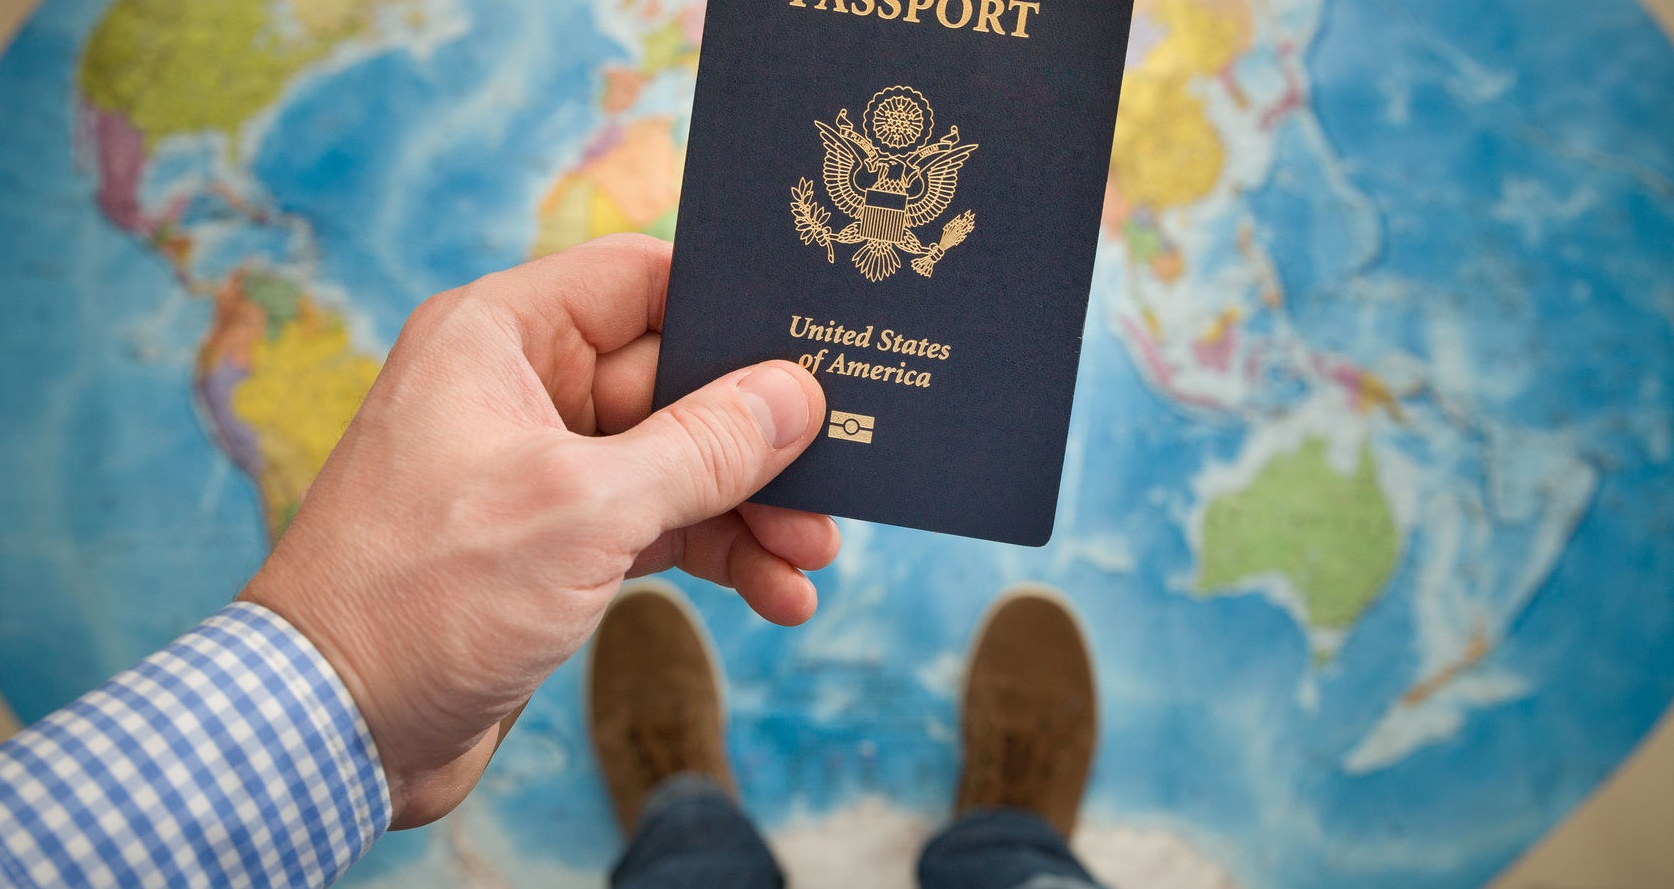 Travel visa services expedited passports visas travel visa services thecheapjerseys Images